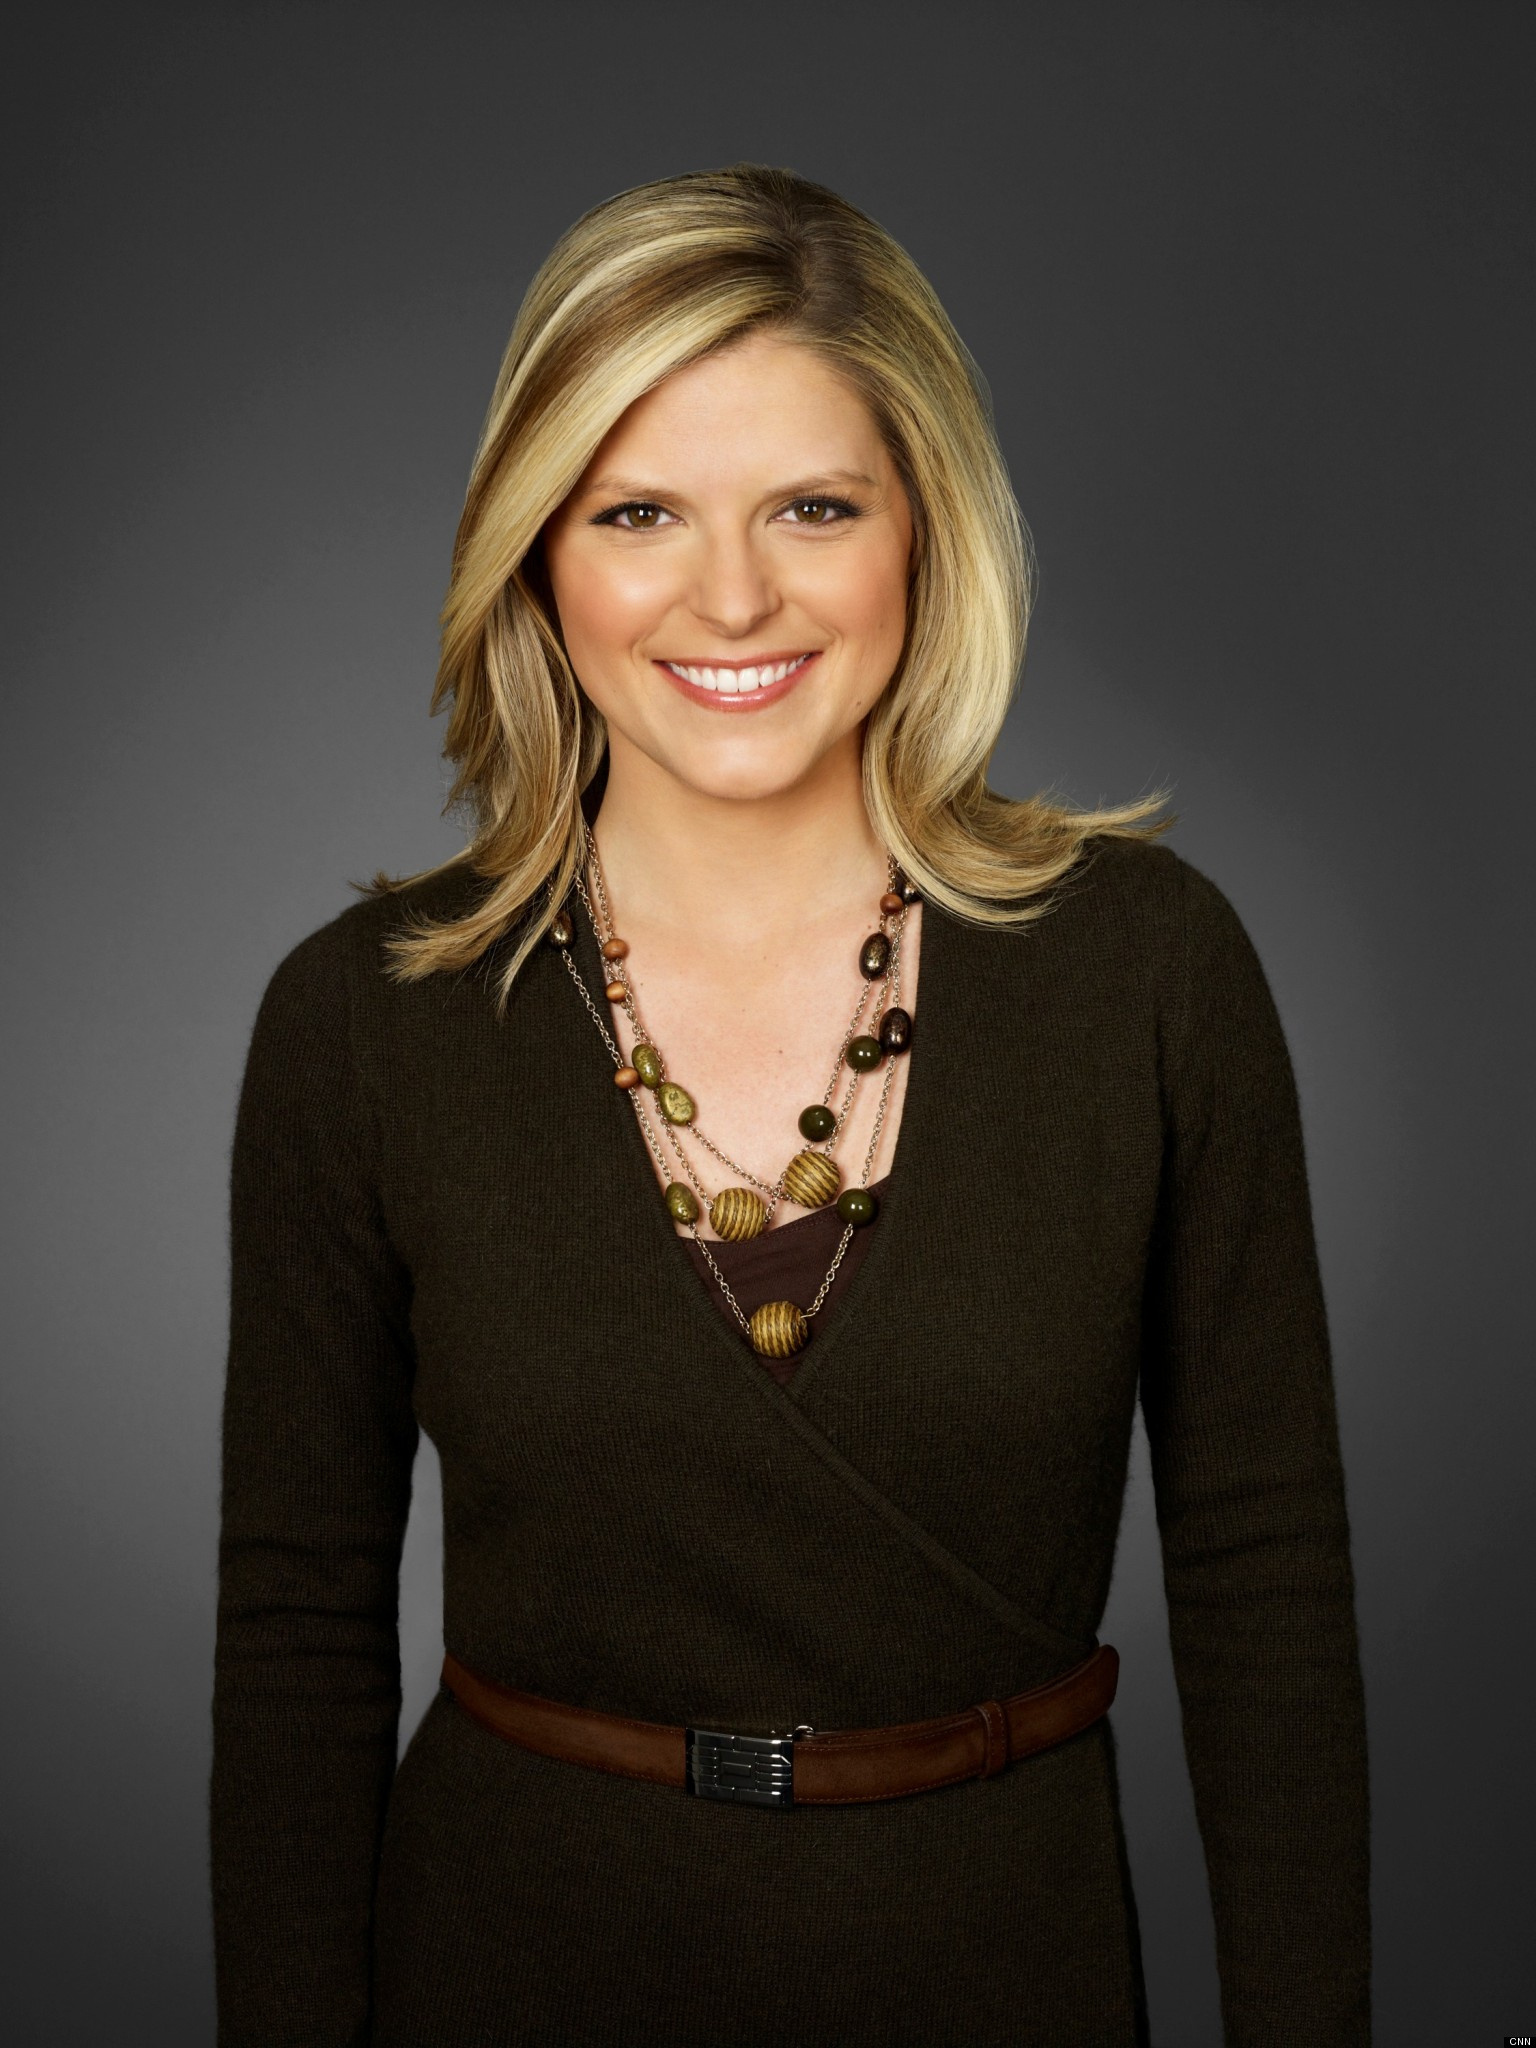 Kate Bolduan an American broadcast journalist